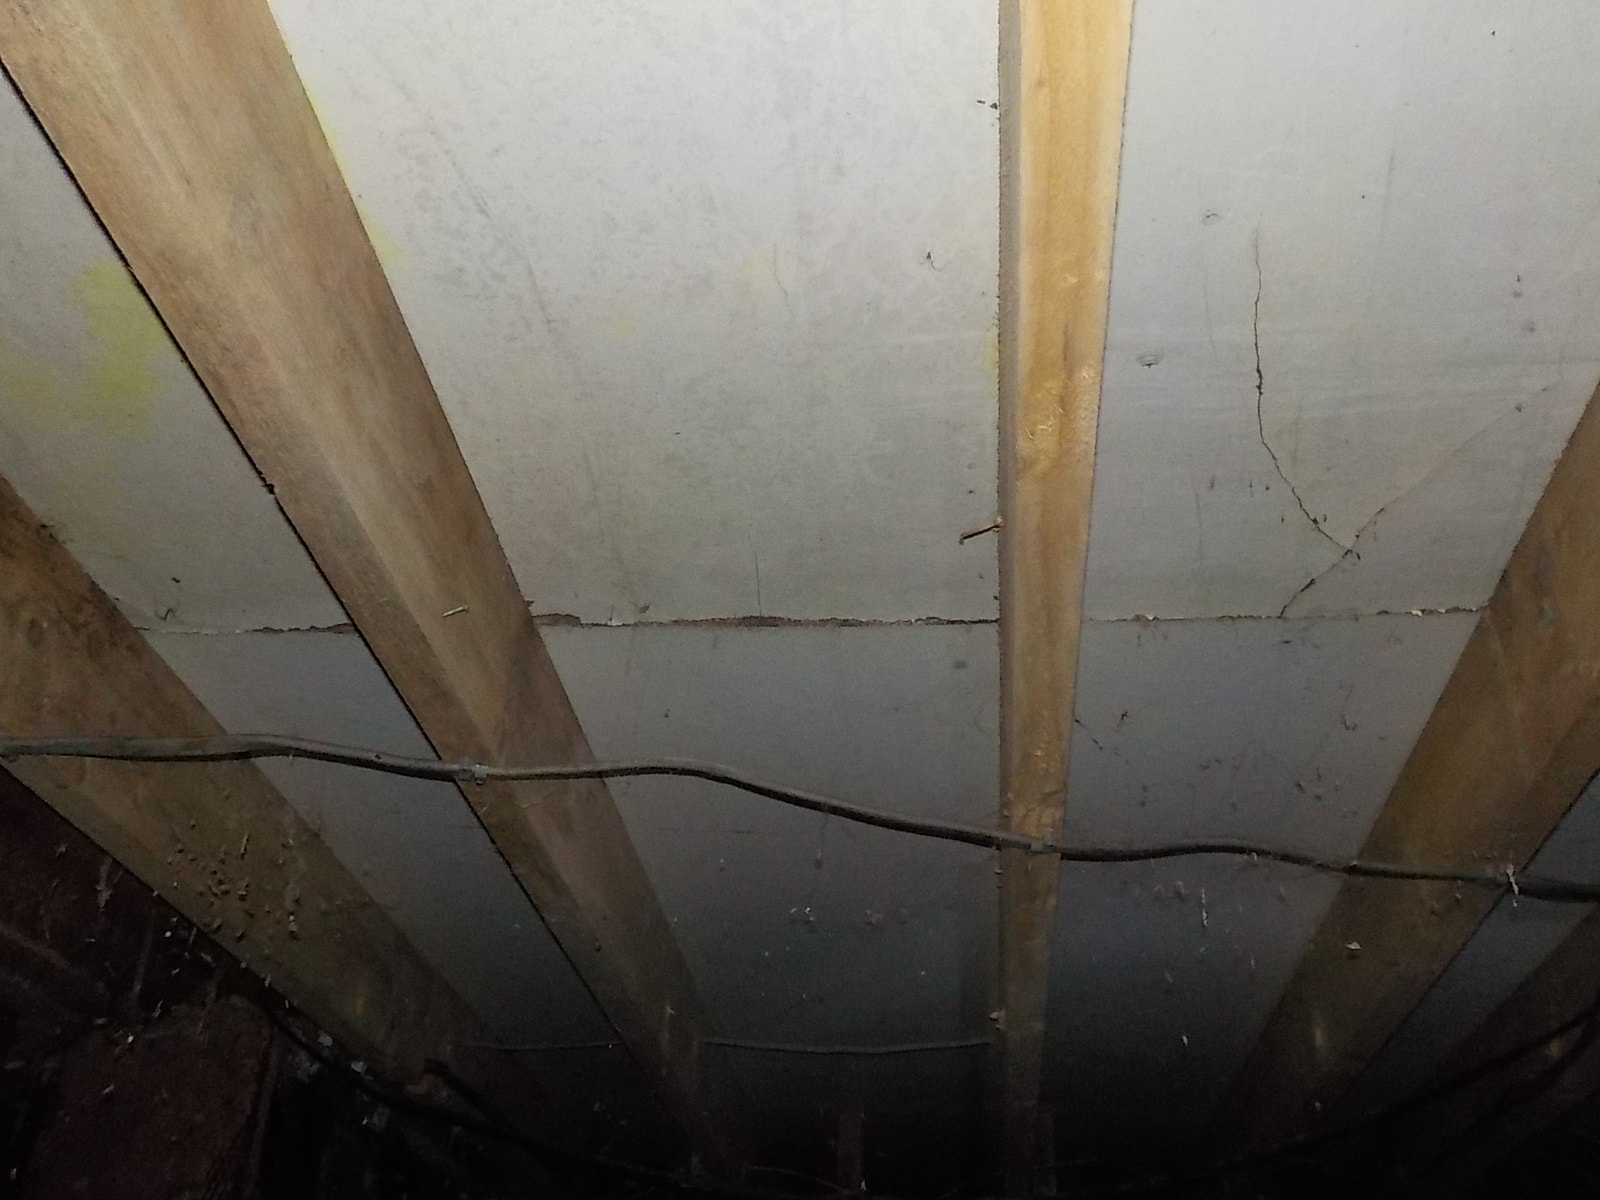 Over spanned and too widley spaced joists